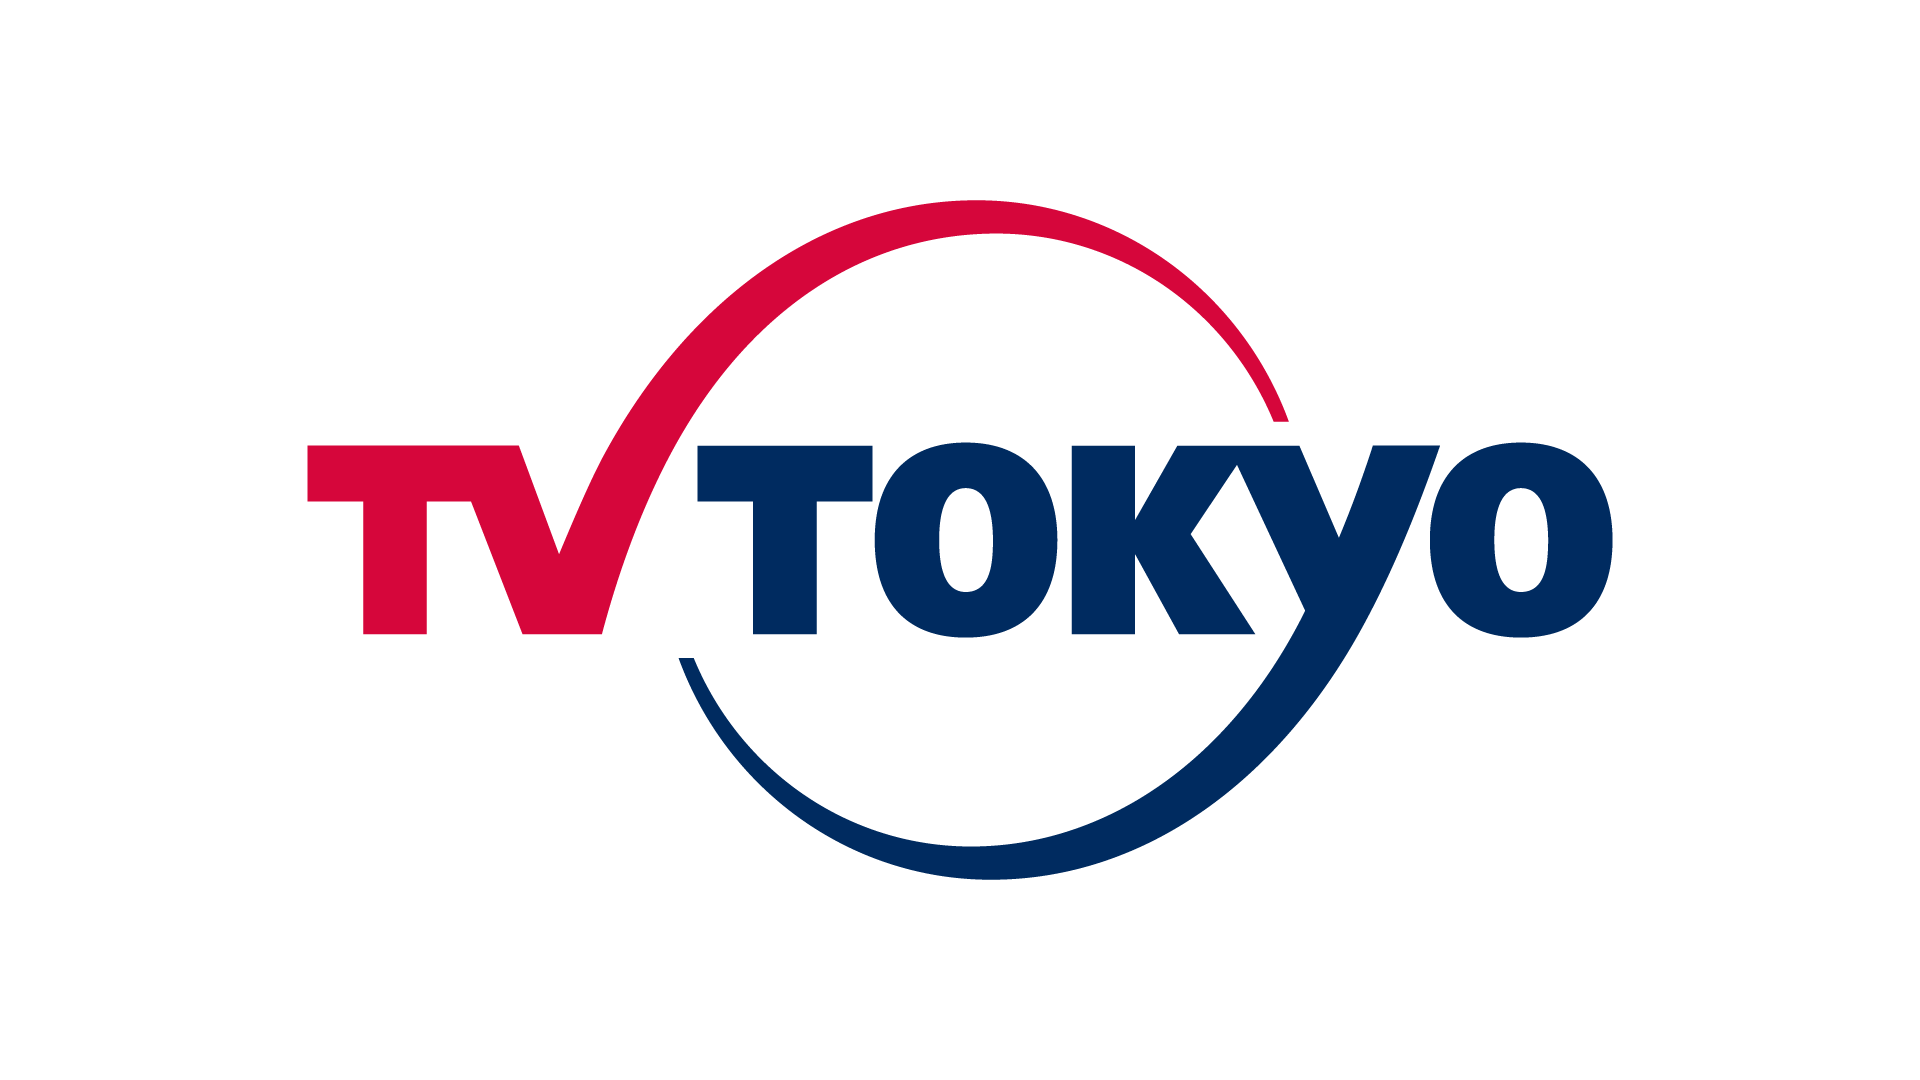 TV Tokyo Corporation Rings the NYSE Closing Bell®